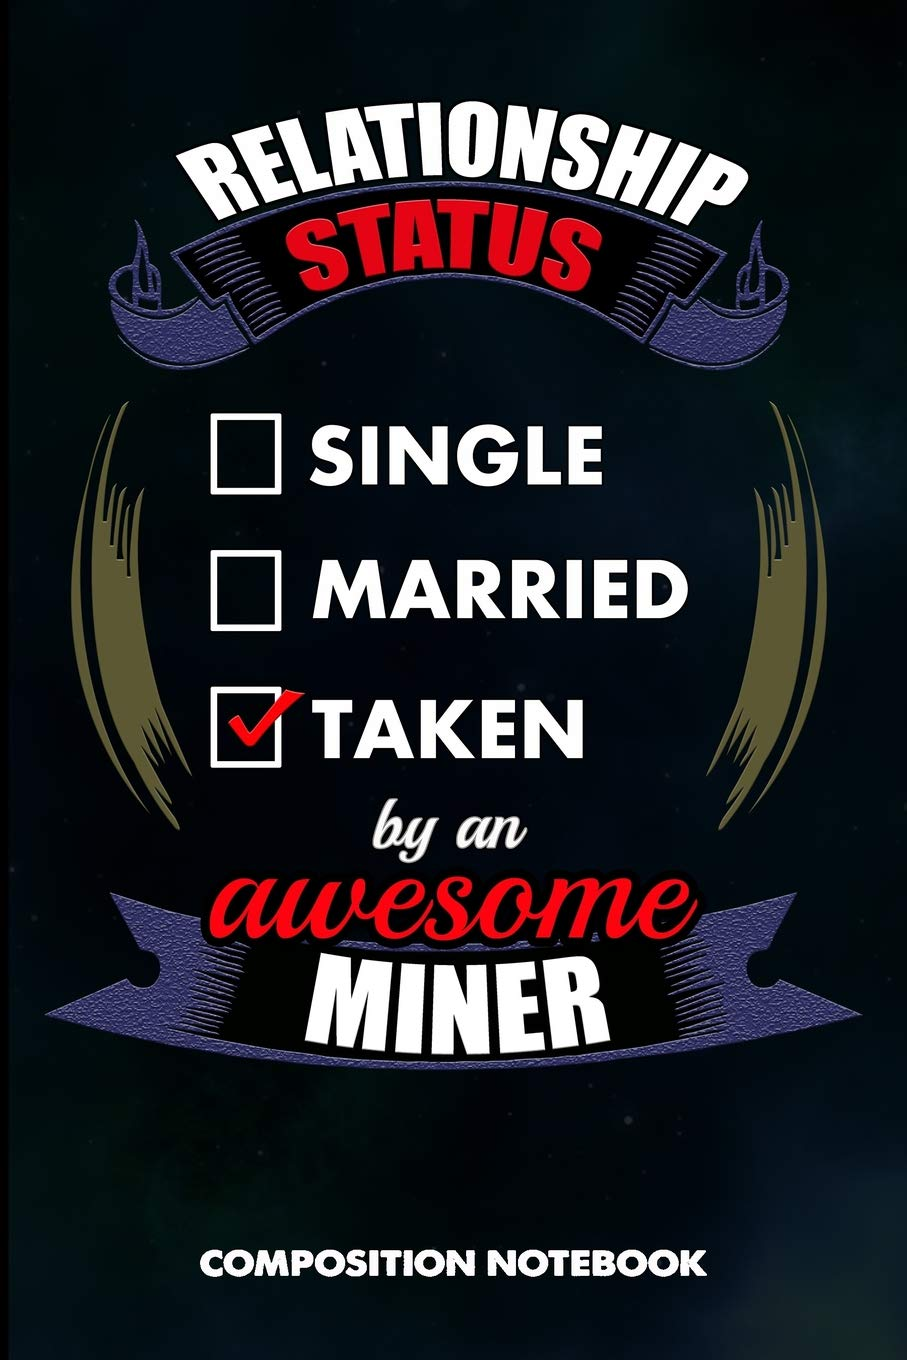 Relationship Status Single Married Taken by an Awesome Miner